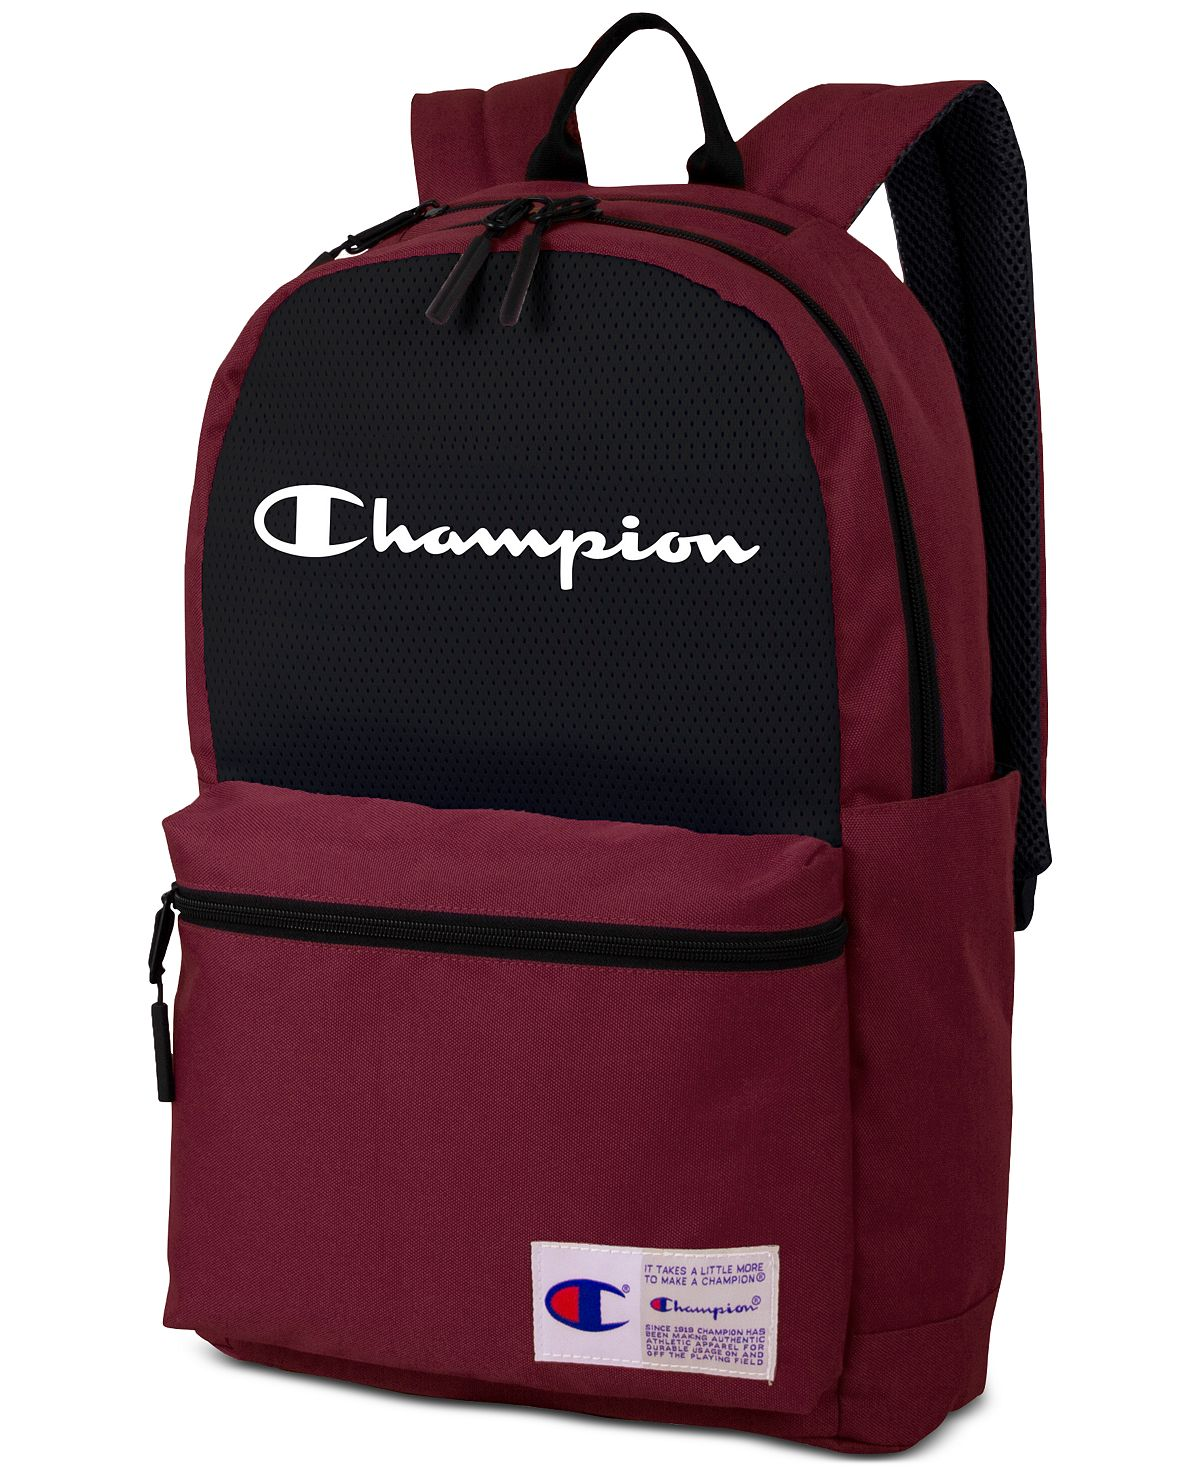 Champion Colorblocked Backpack Burgundy